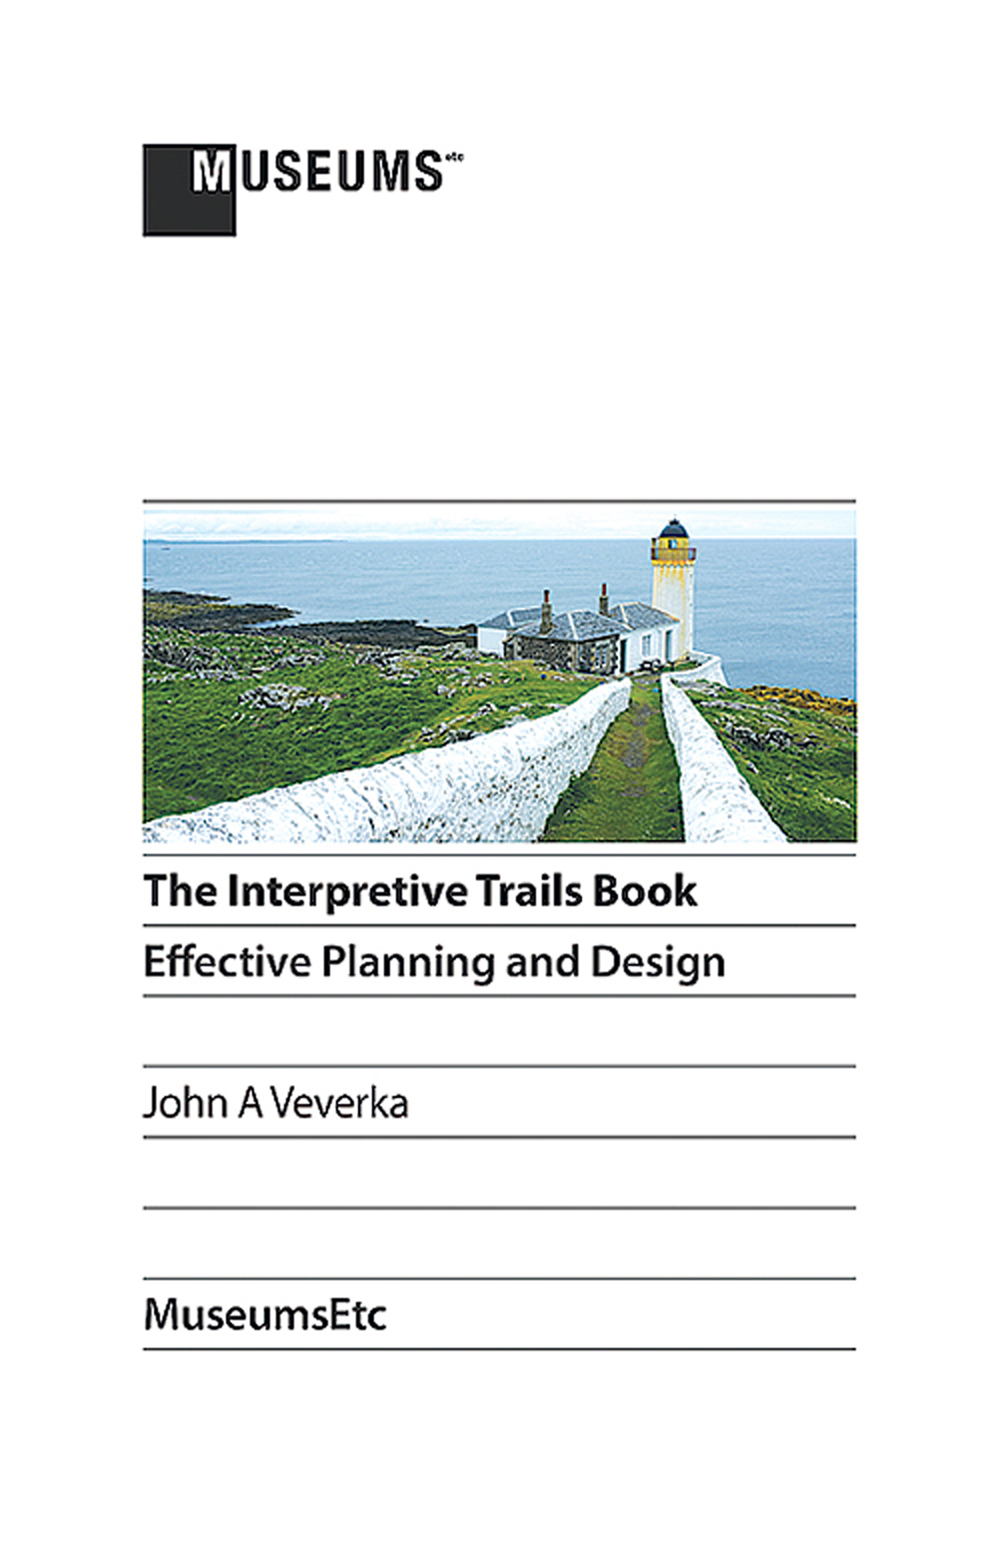 Interpretive Trails Book (The): Effective Planning and Design